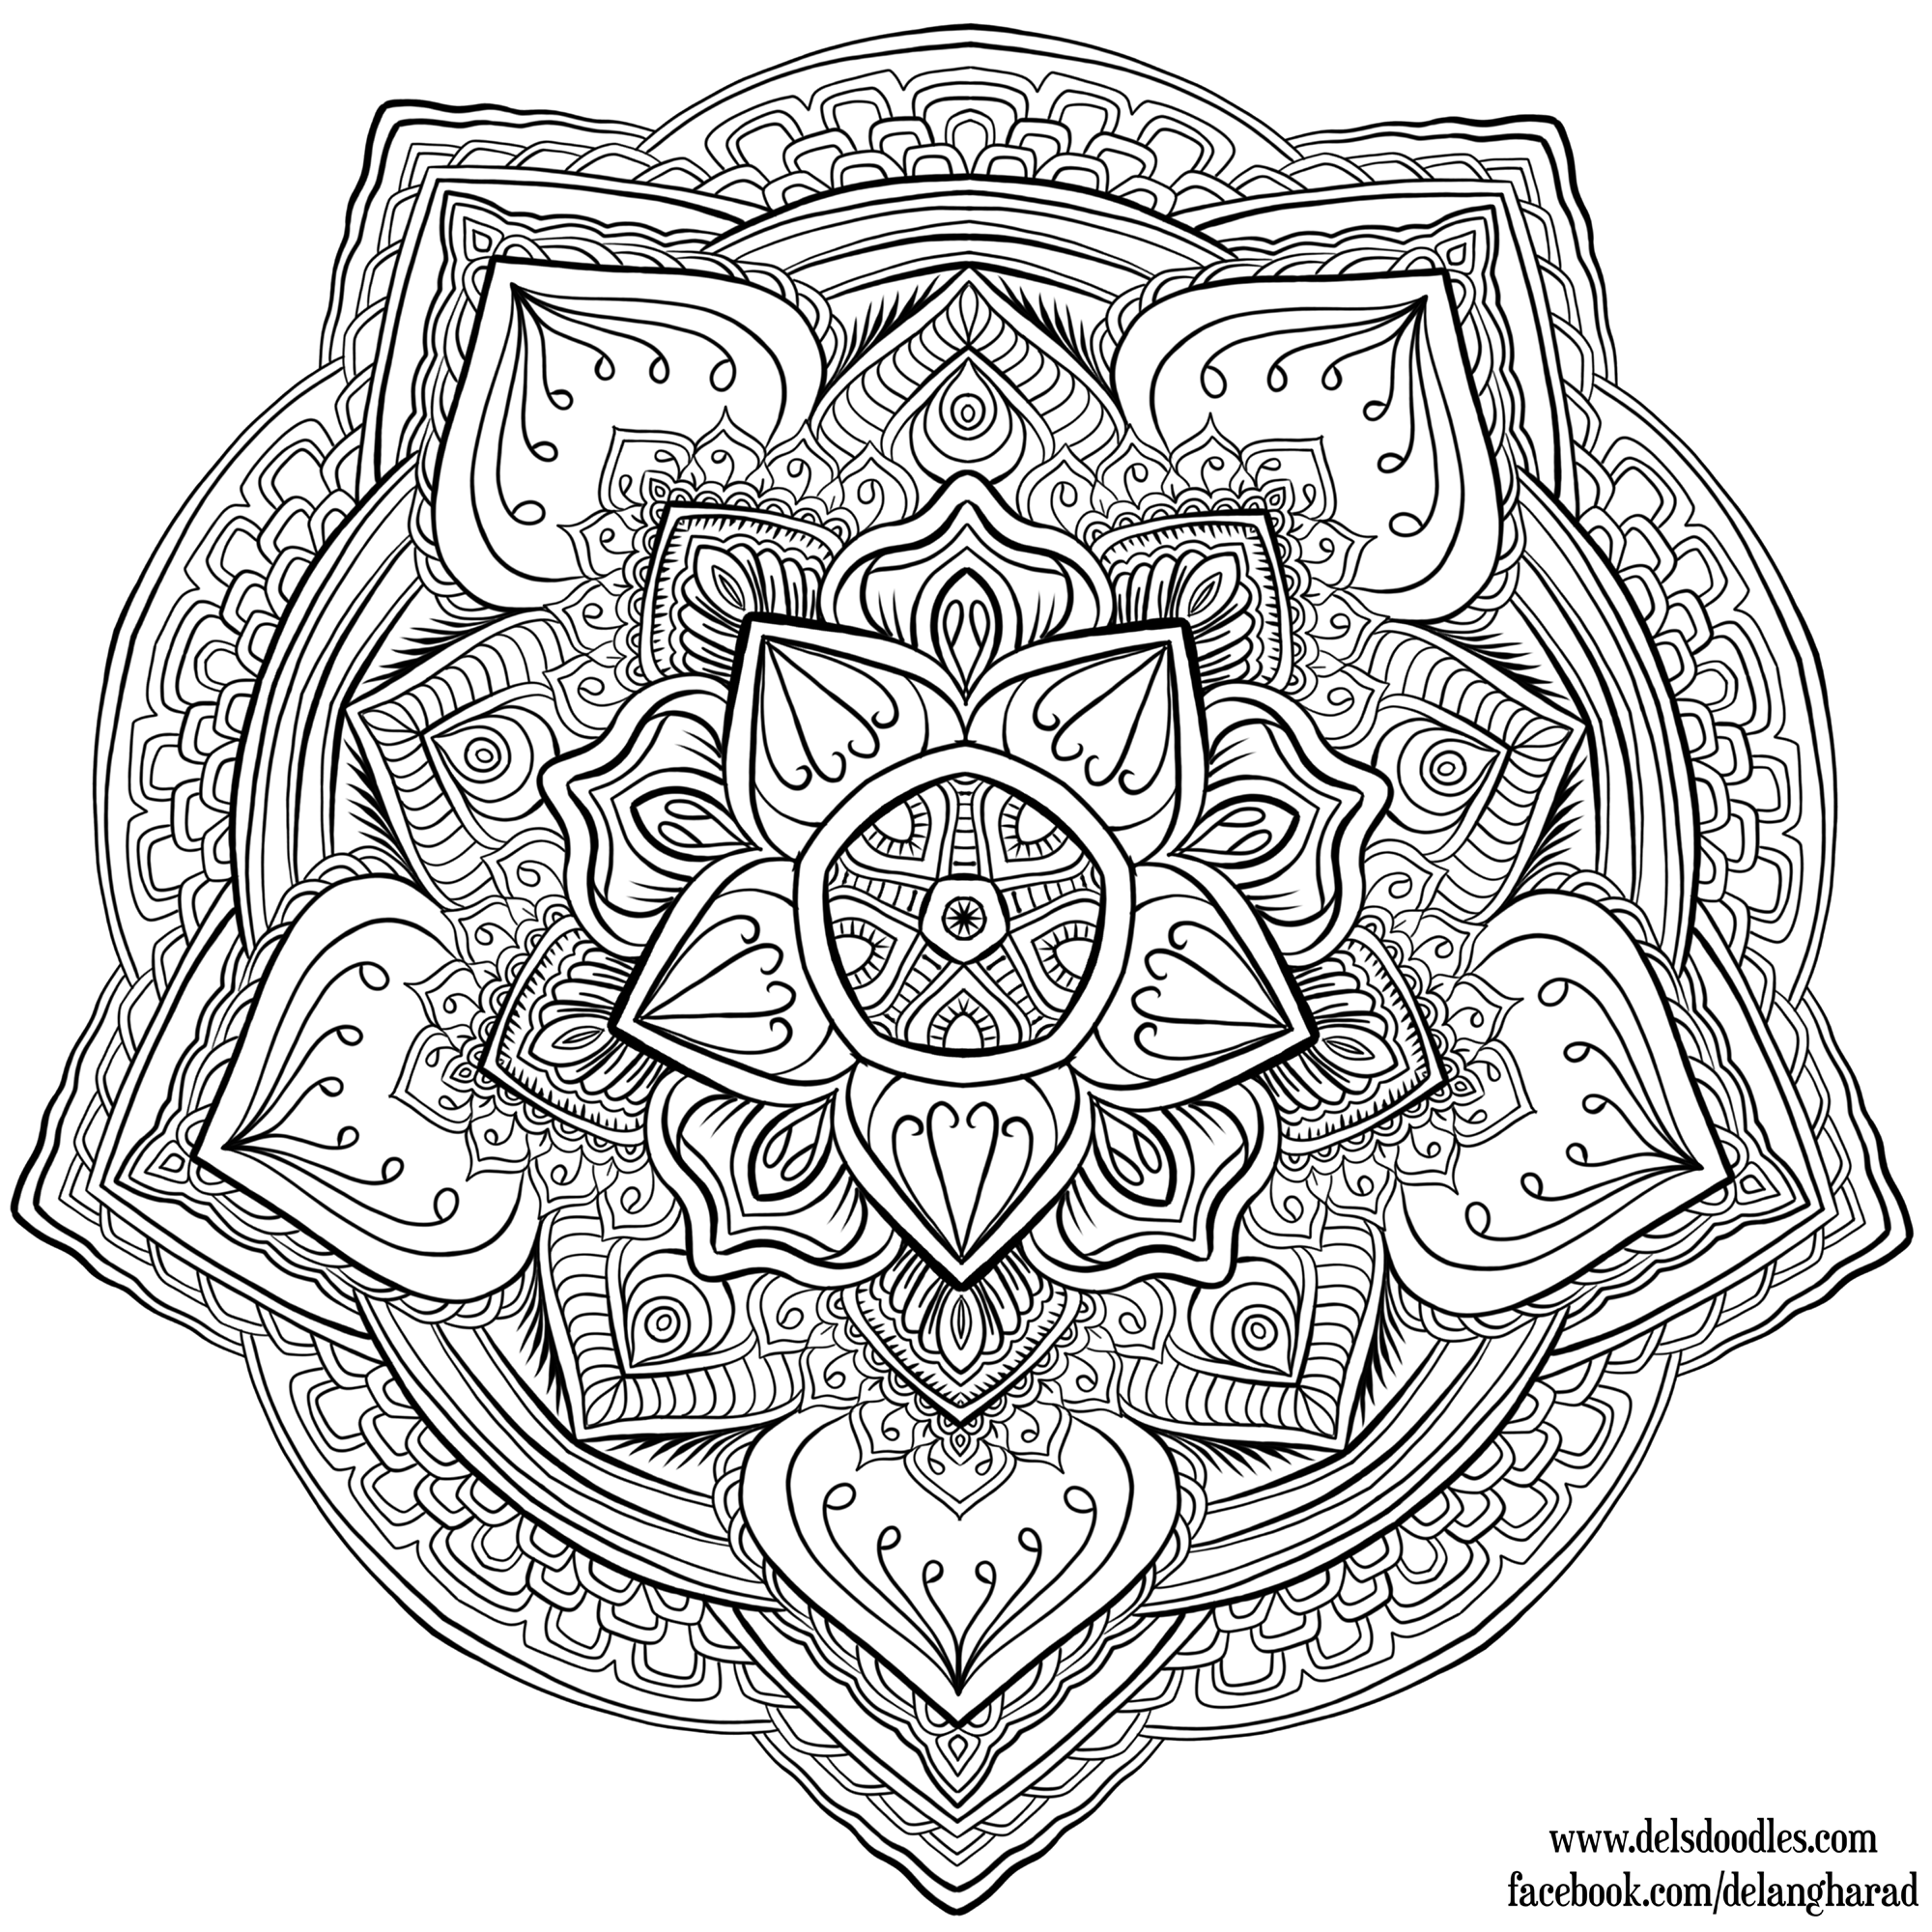 1000+ Images About Coloring Mandala's On Pinterest